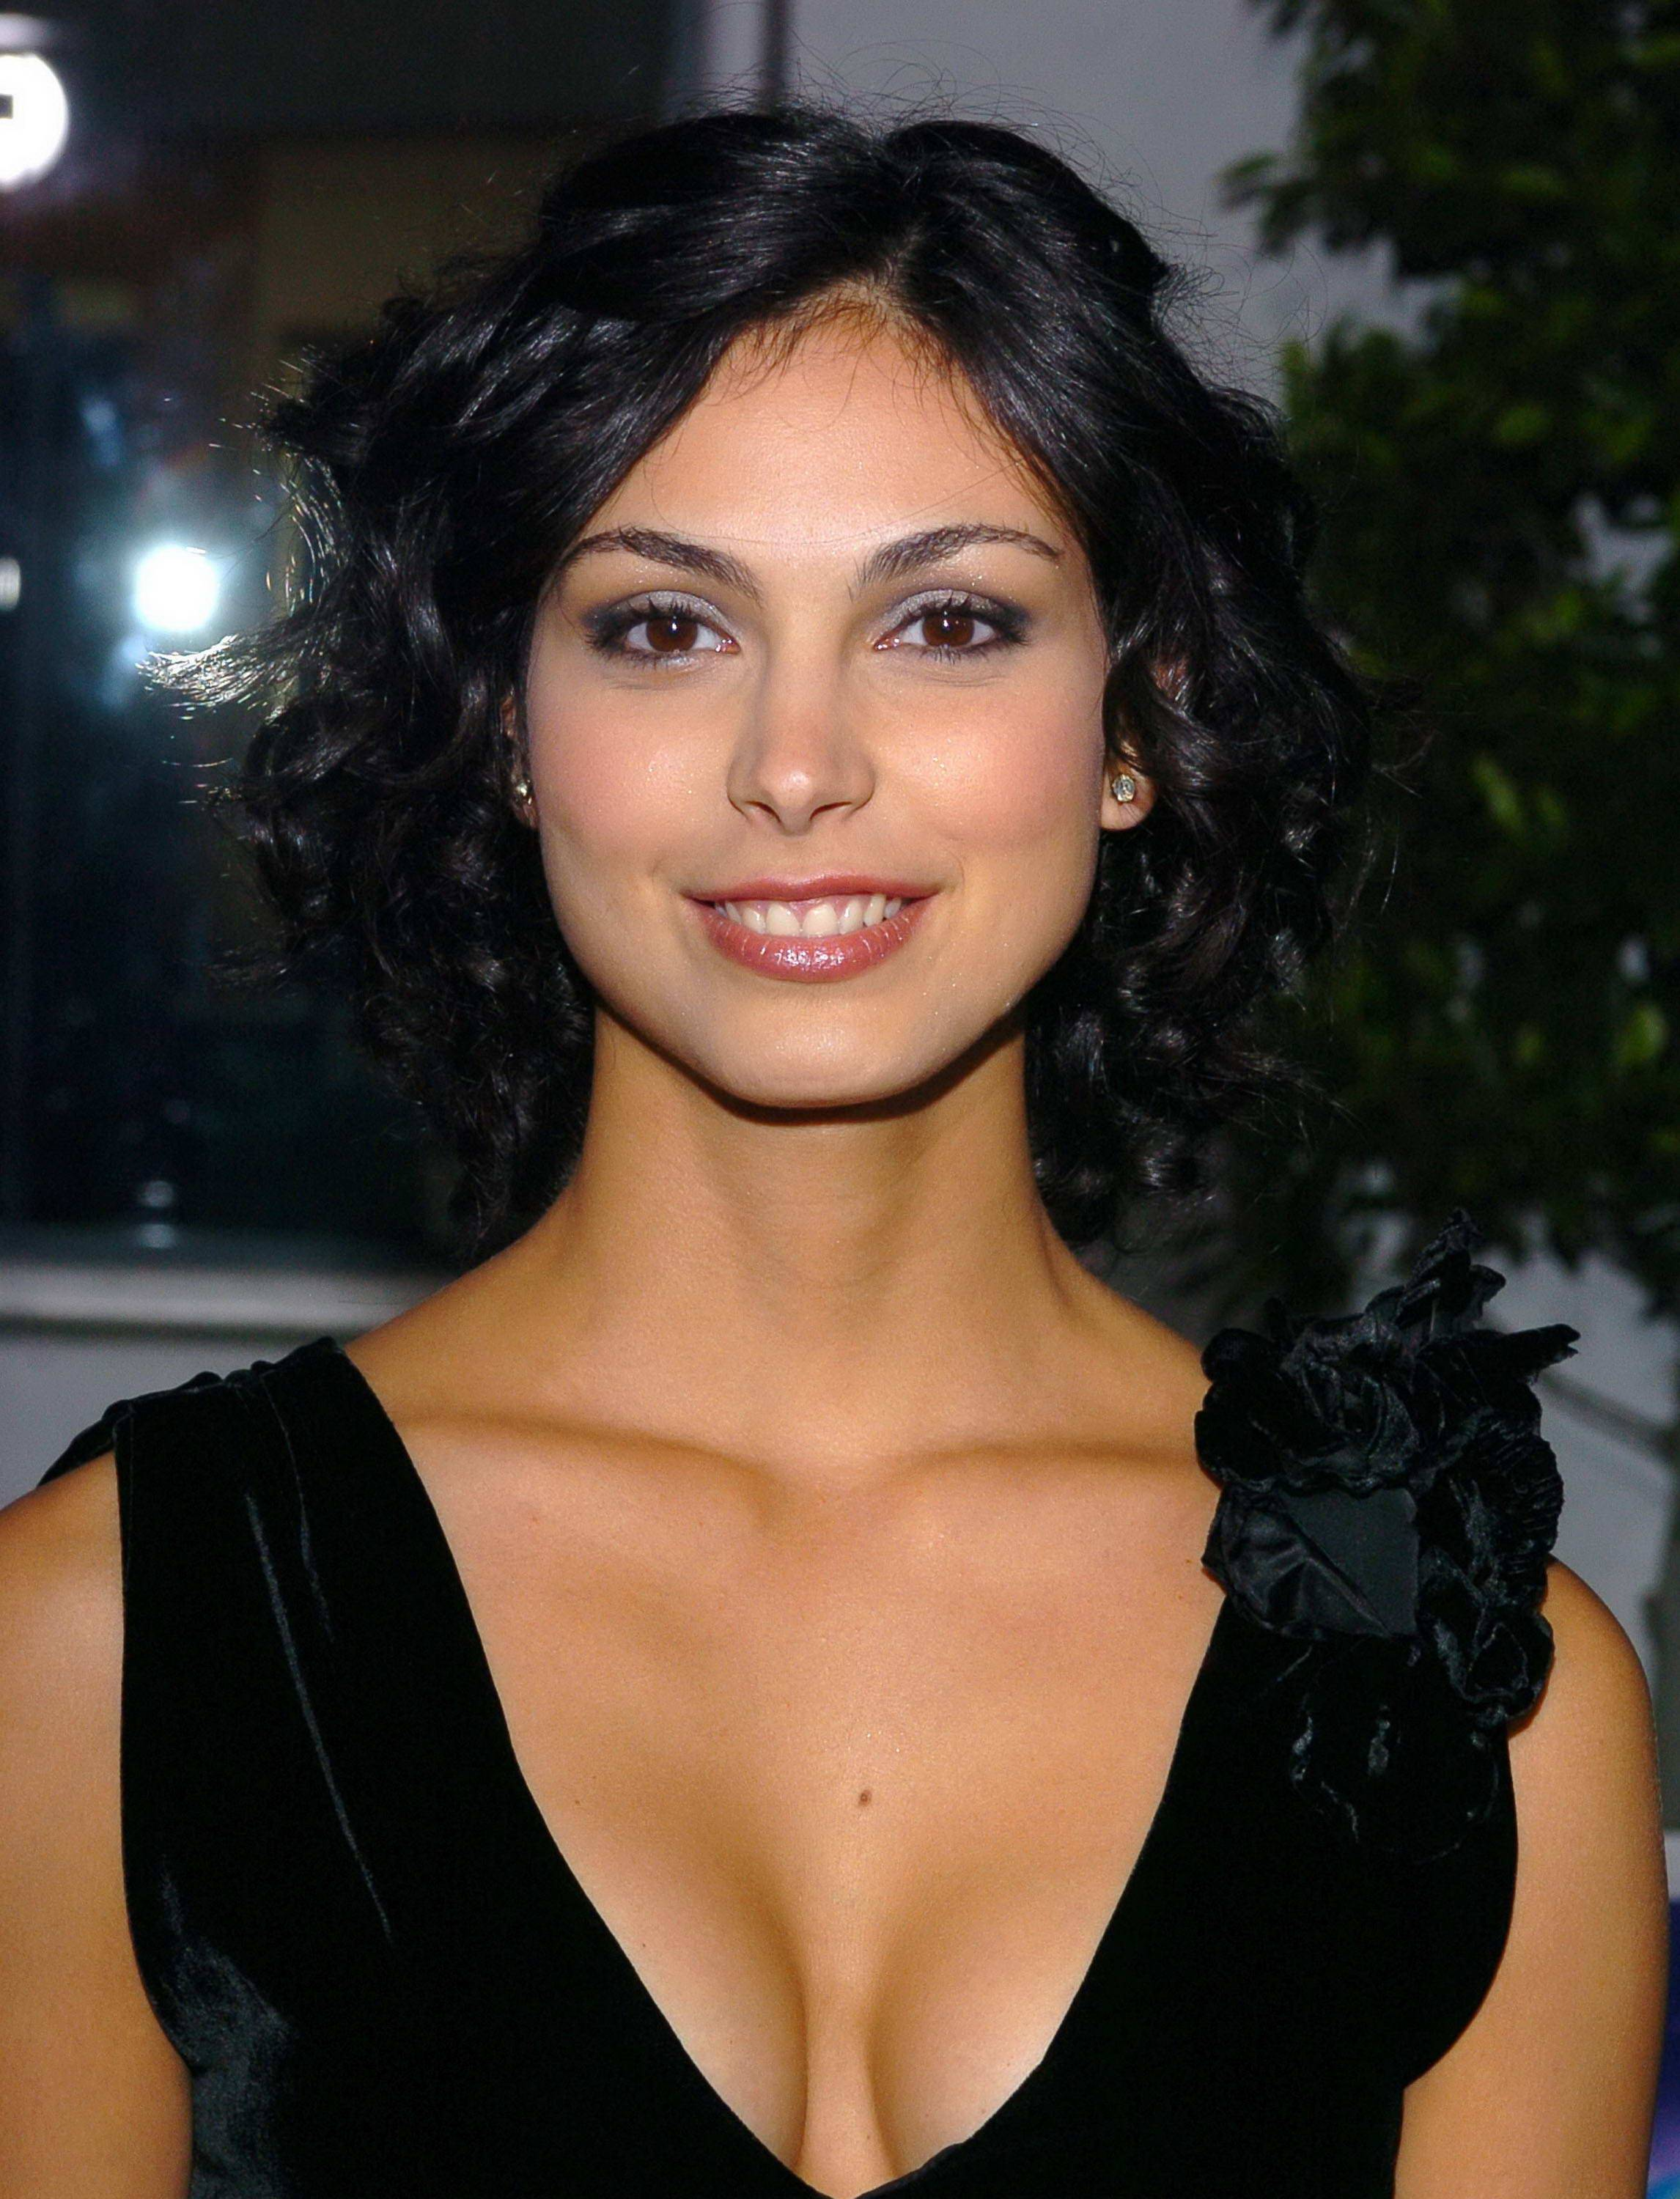 Morena Baccarin Hot Cleavage